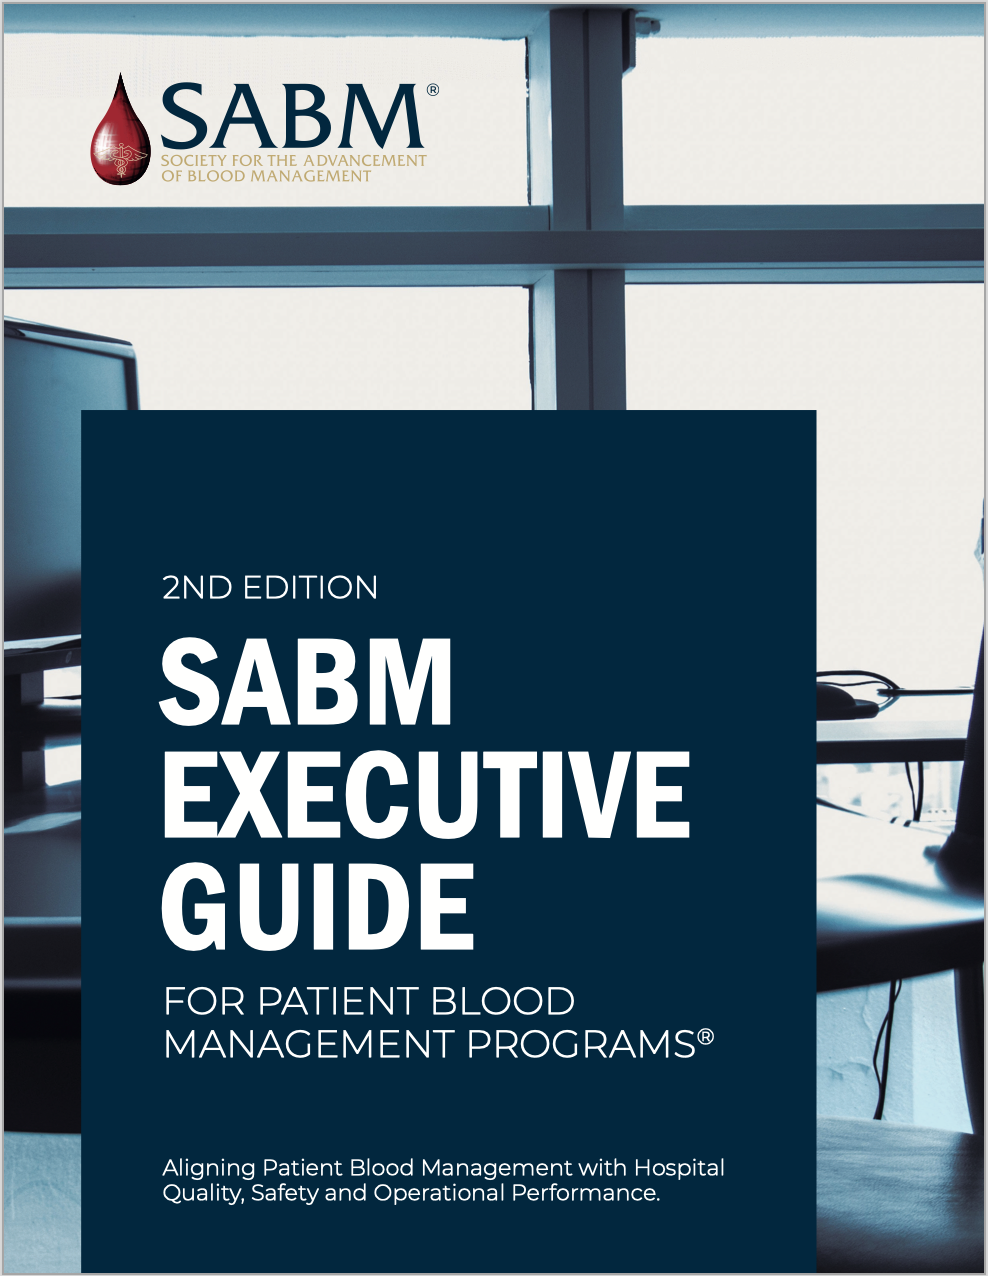 SABM Executive Guide for Patient Blood Management Programs, 2nd Edition